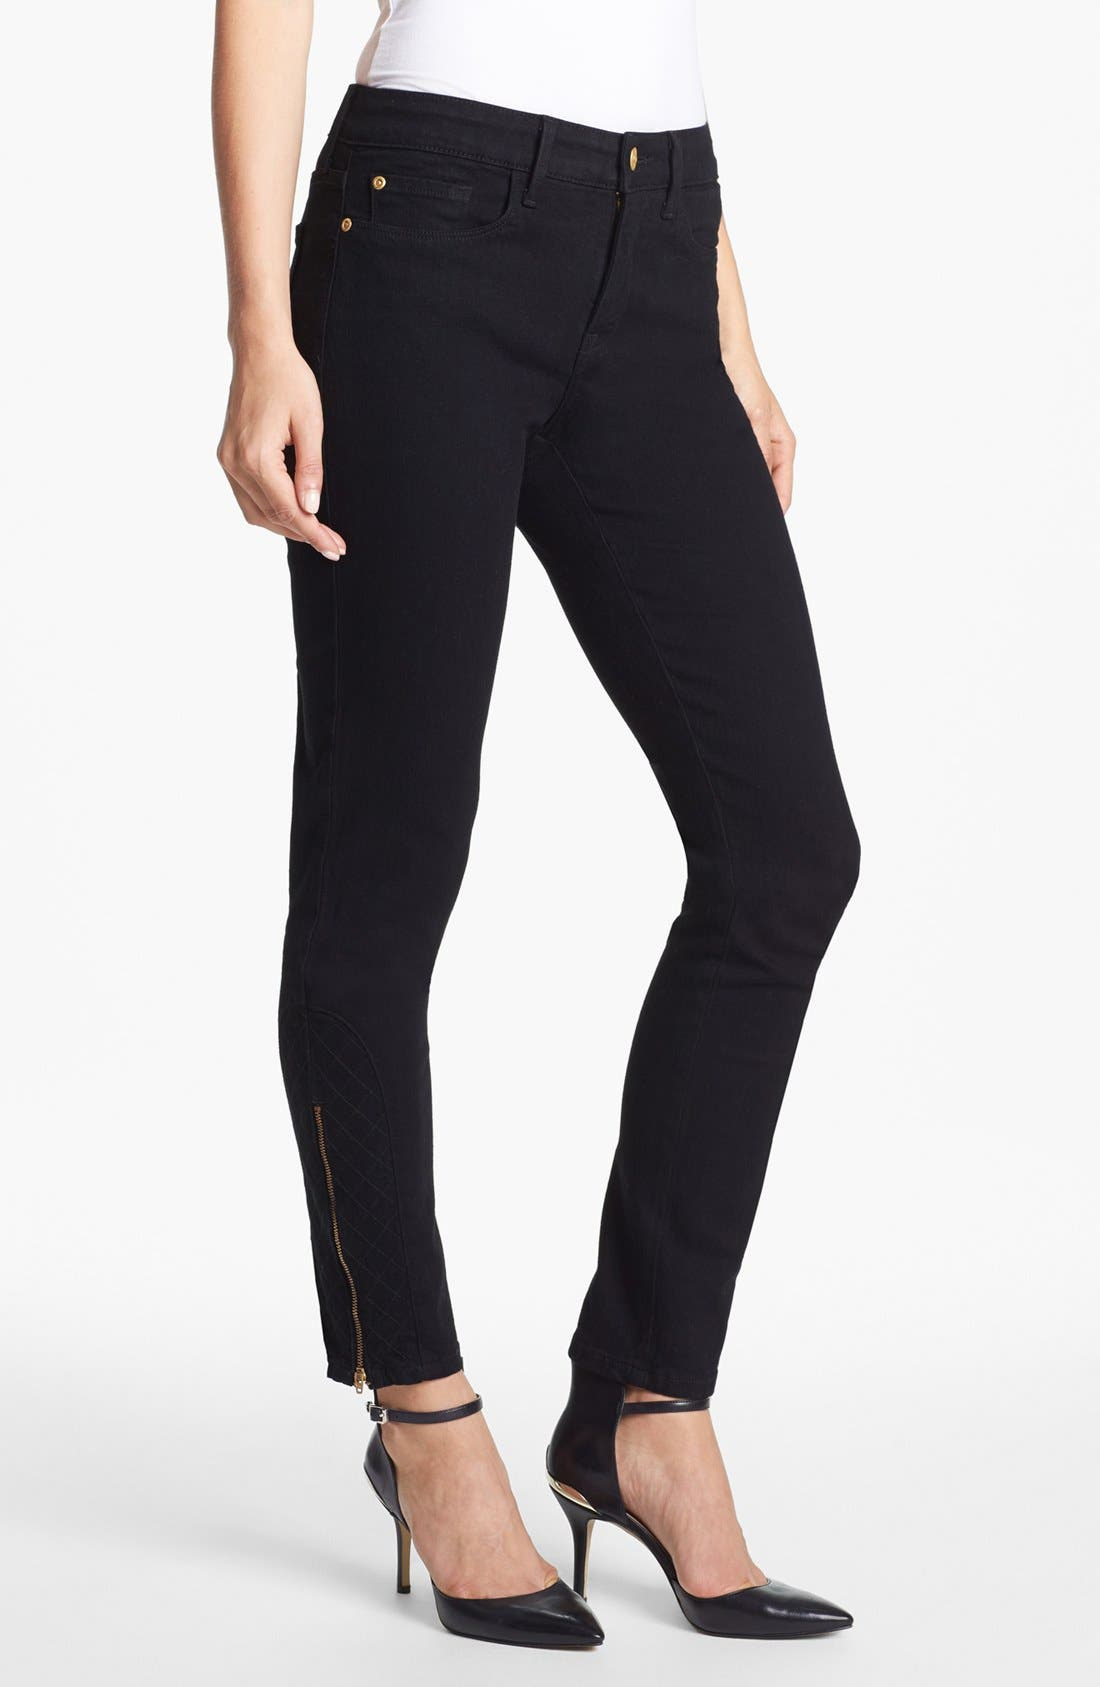 Main Image - NYDJ 'Arabella' Ankle Zip Stretch Skinny Jeans